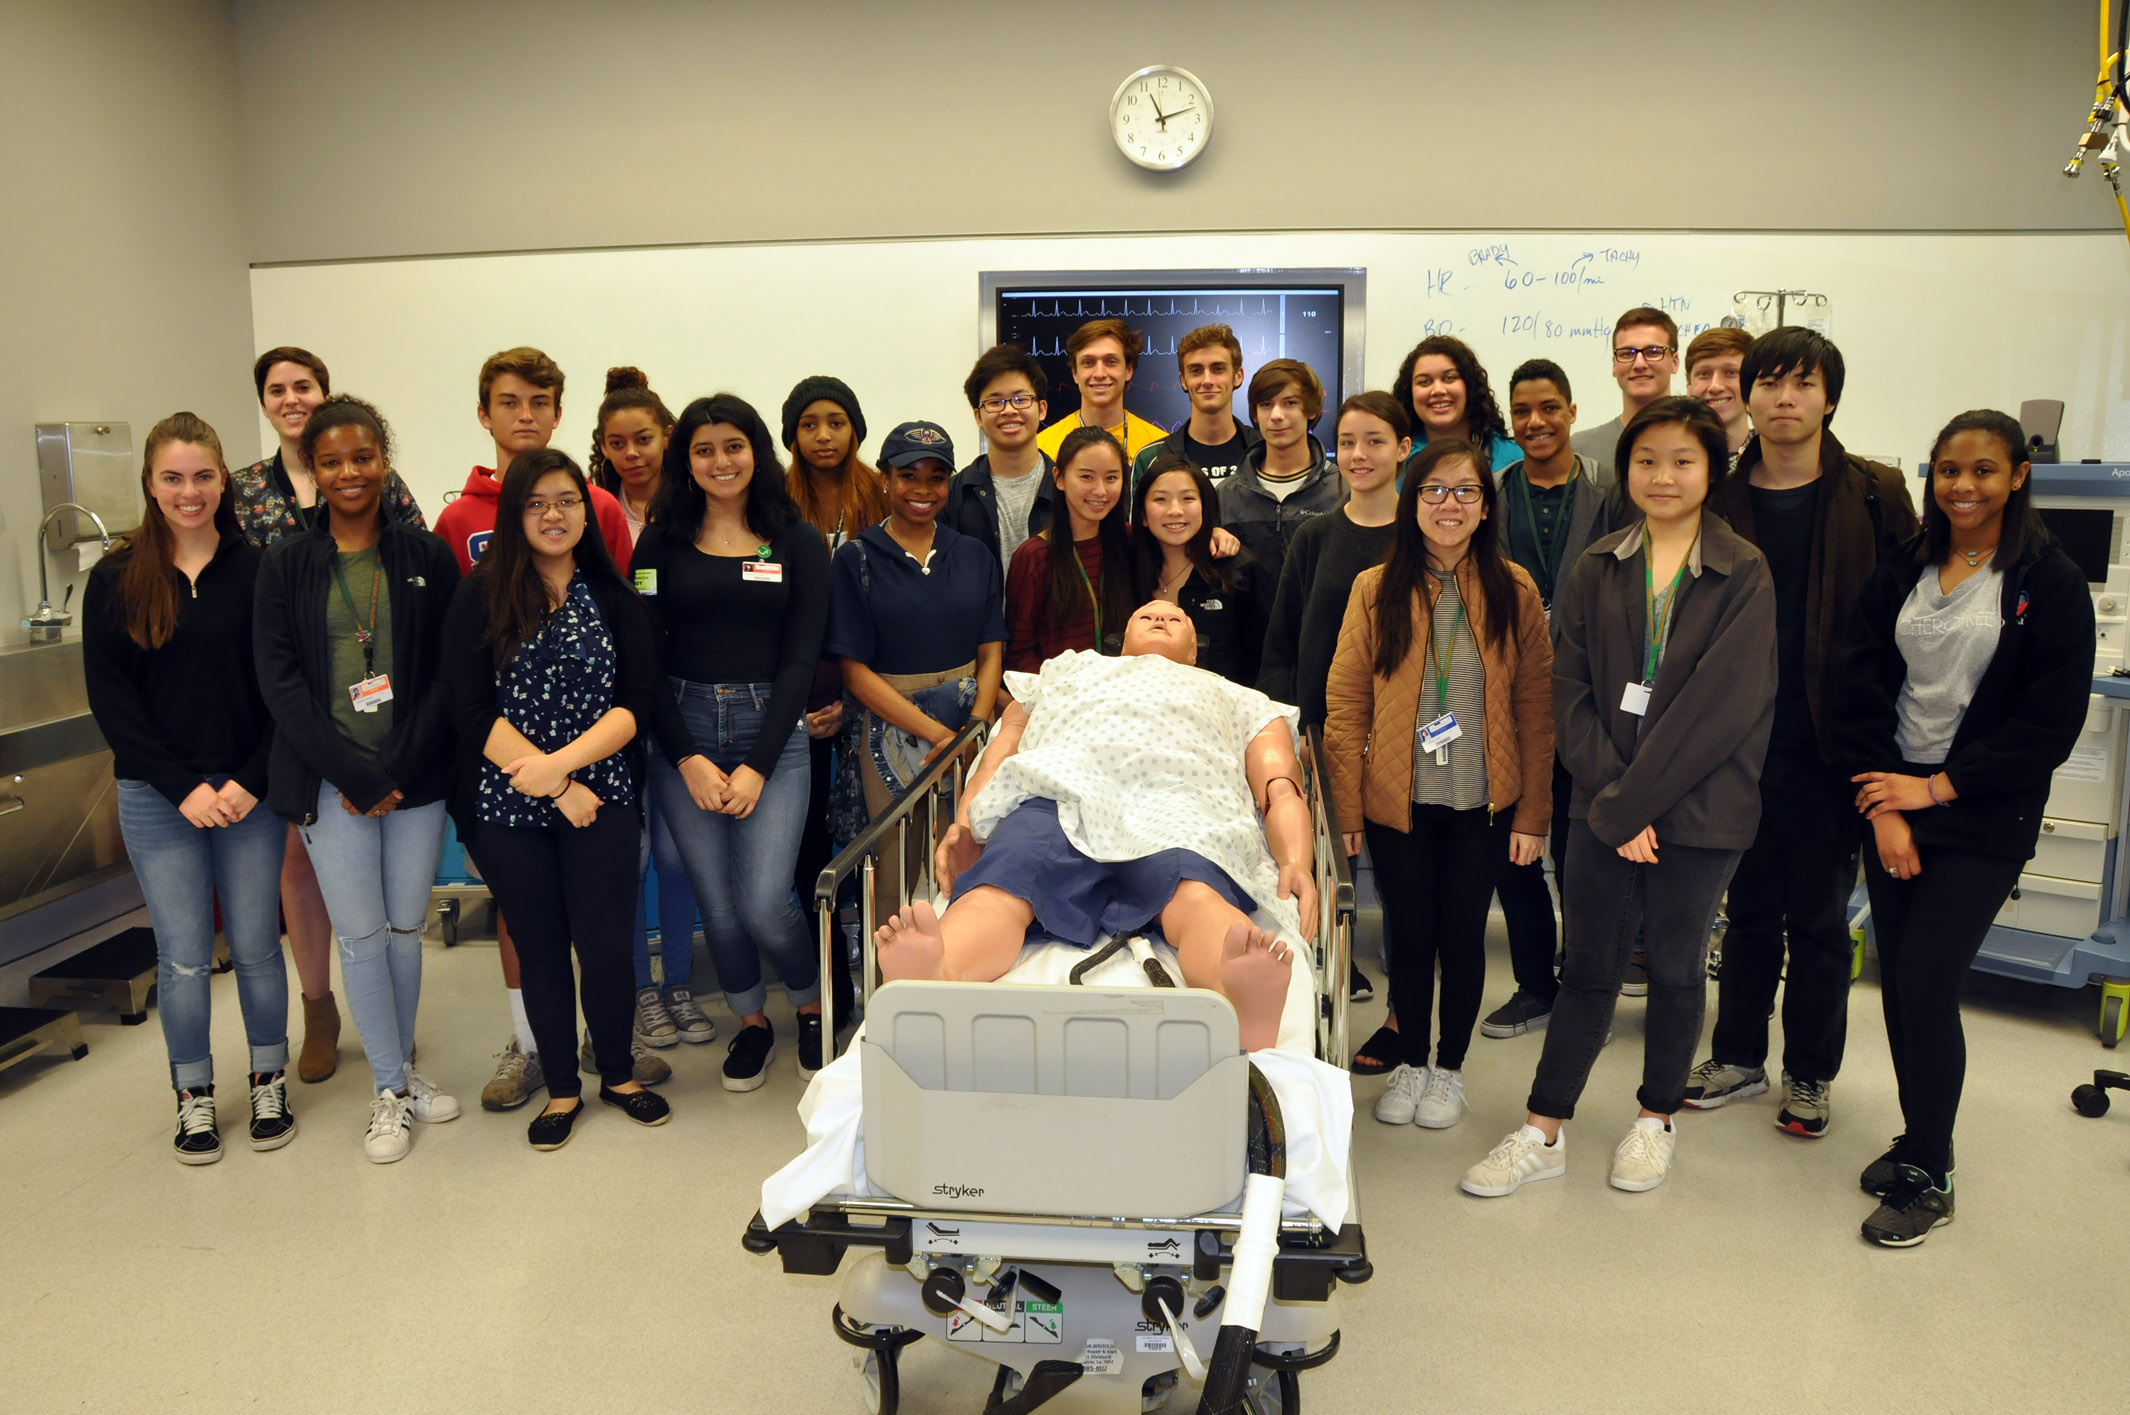 Ben Franklin High School Brings 98 Students To Tour